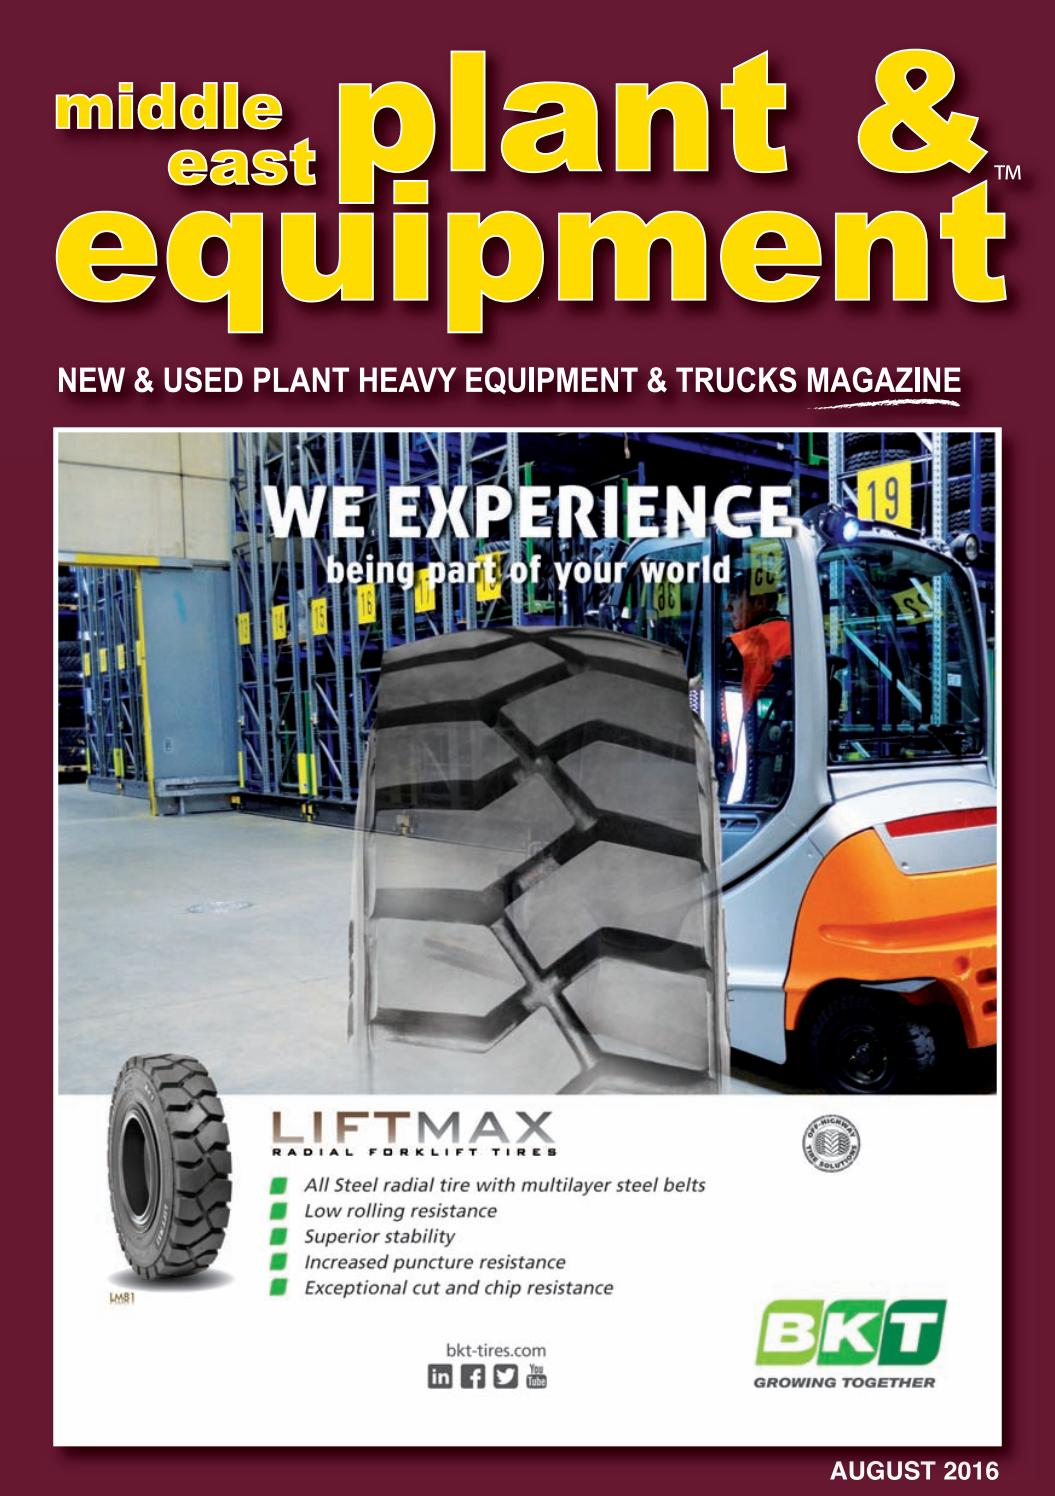 Middle East Plant & Equipment - August 2016 Edition by Middle East Plant &  Equipment - issuu